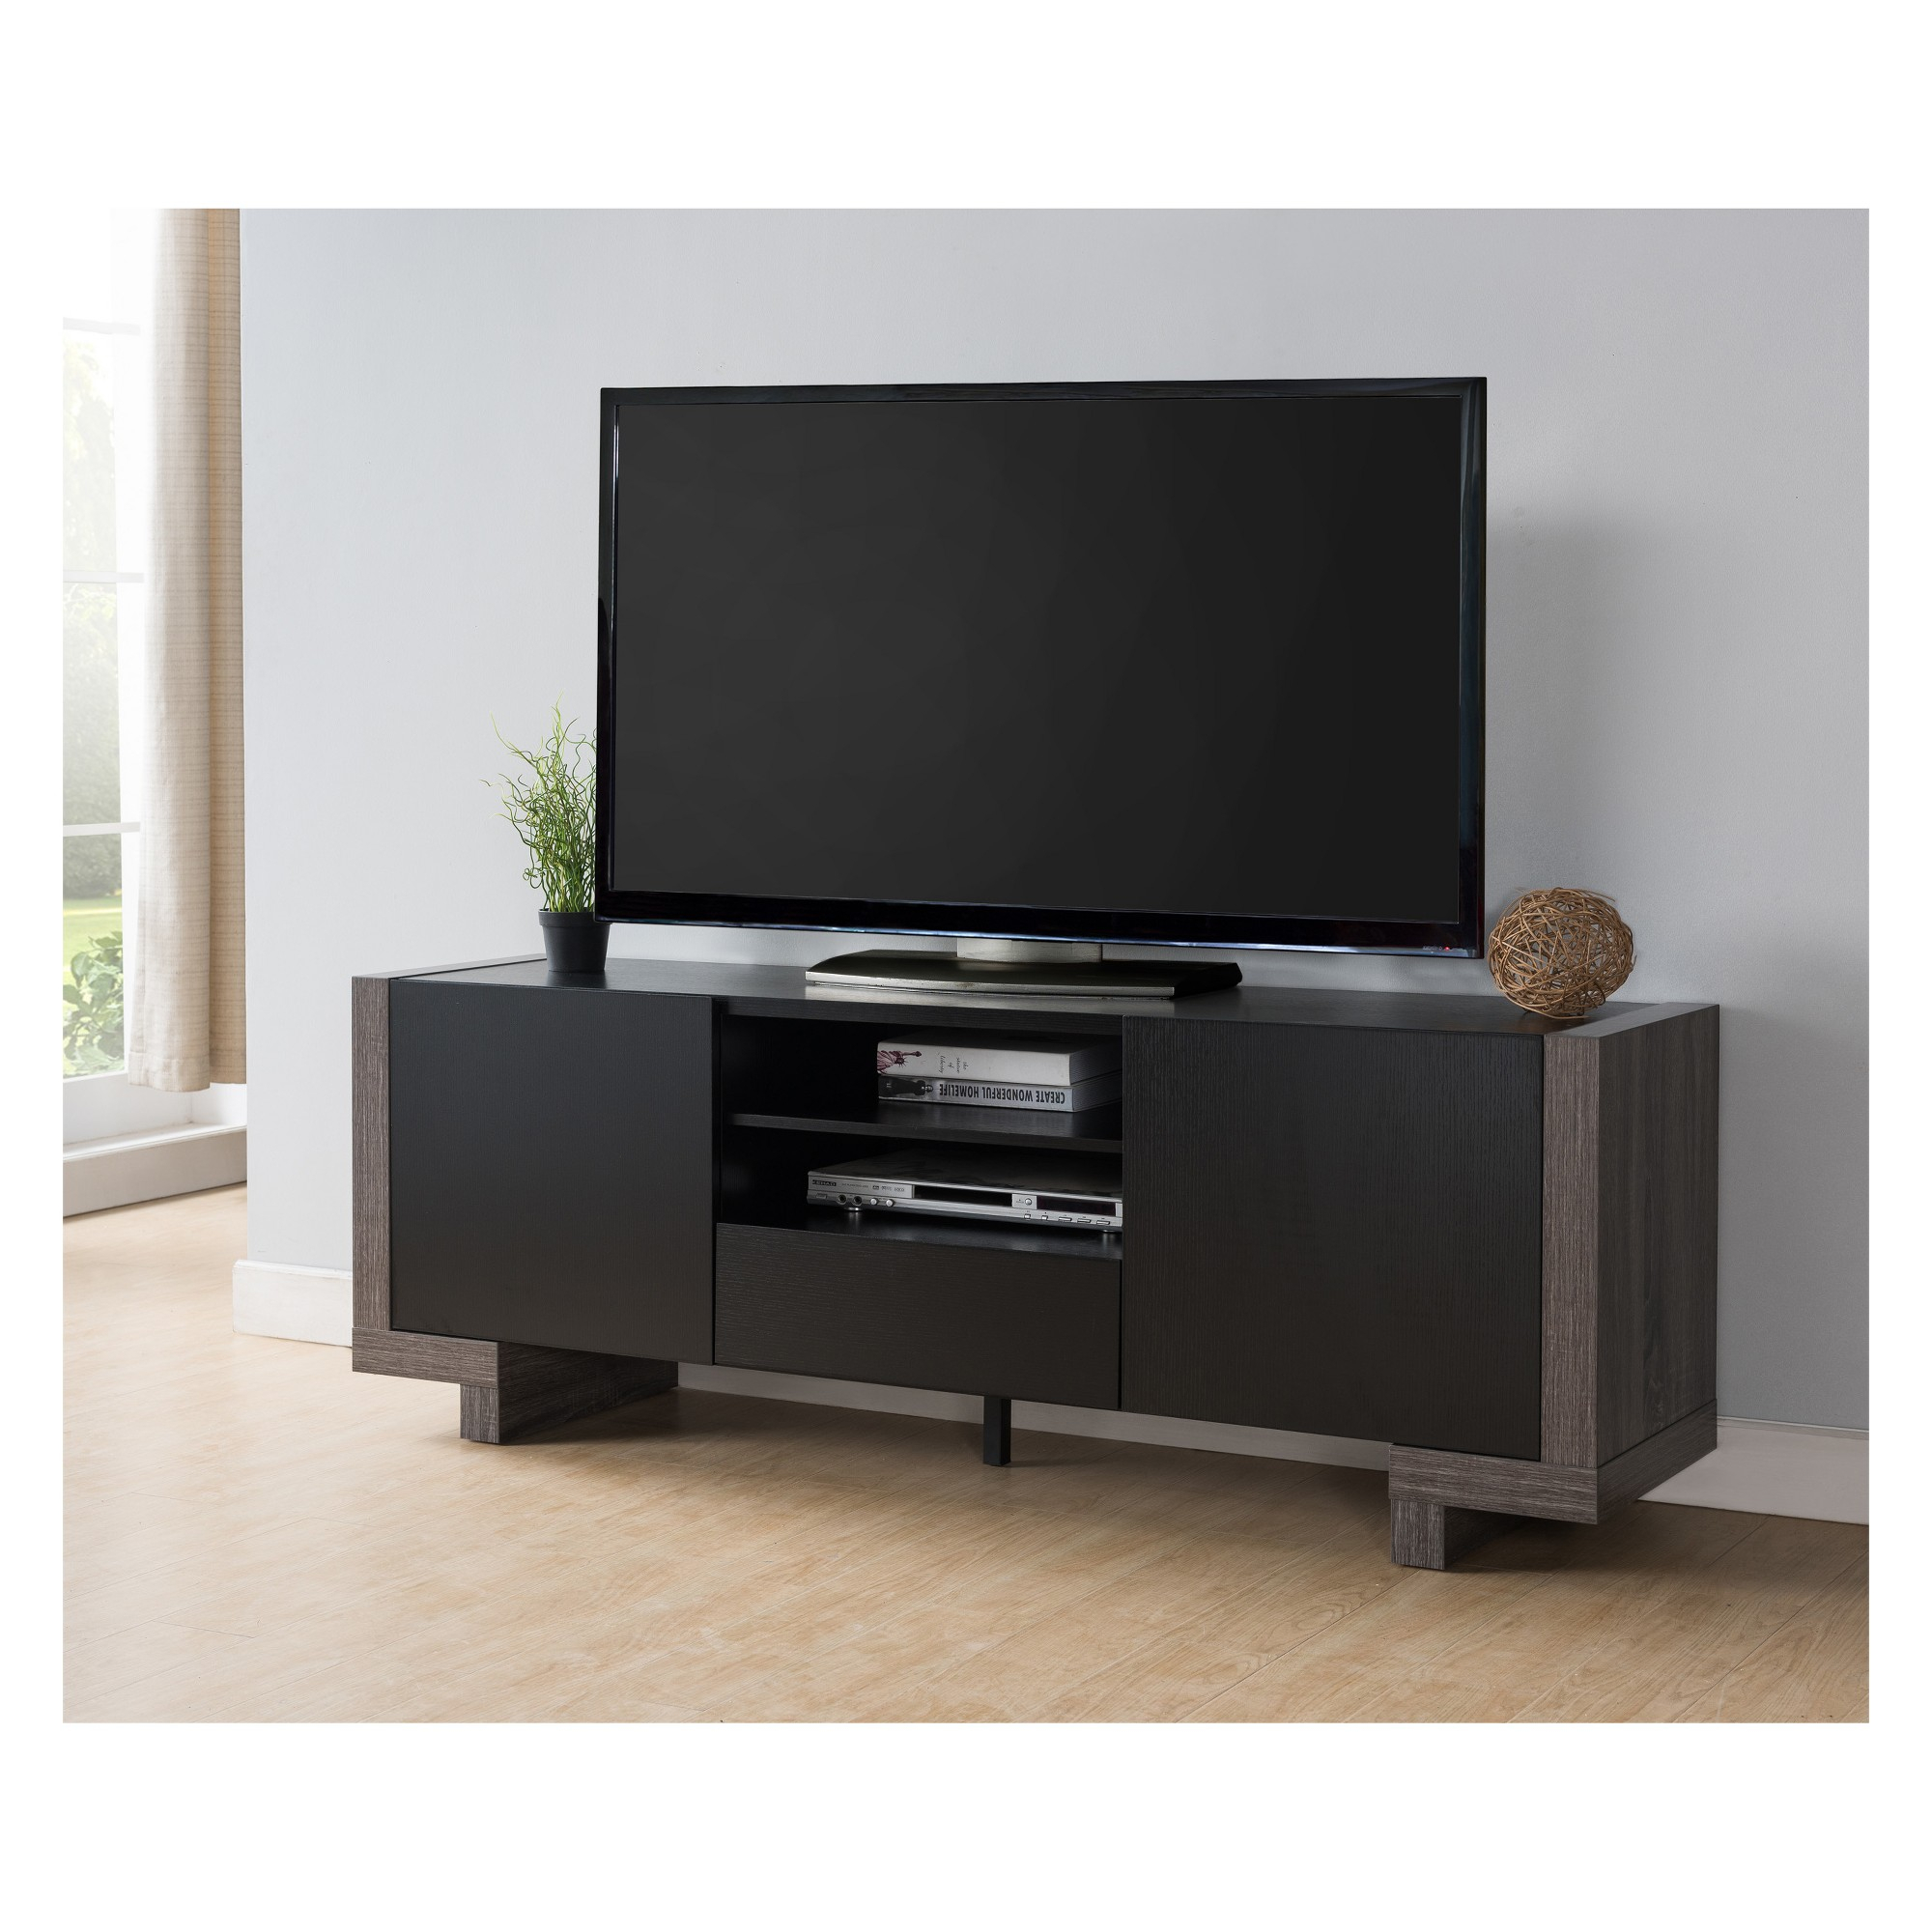 Rector Contemporary Six Shelves Tv Stand Distressed Gray - Homes within Rowan 64 Inch Tv Stands (Image 22 of 30)